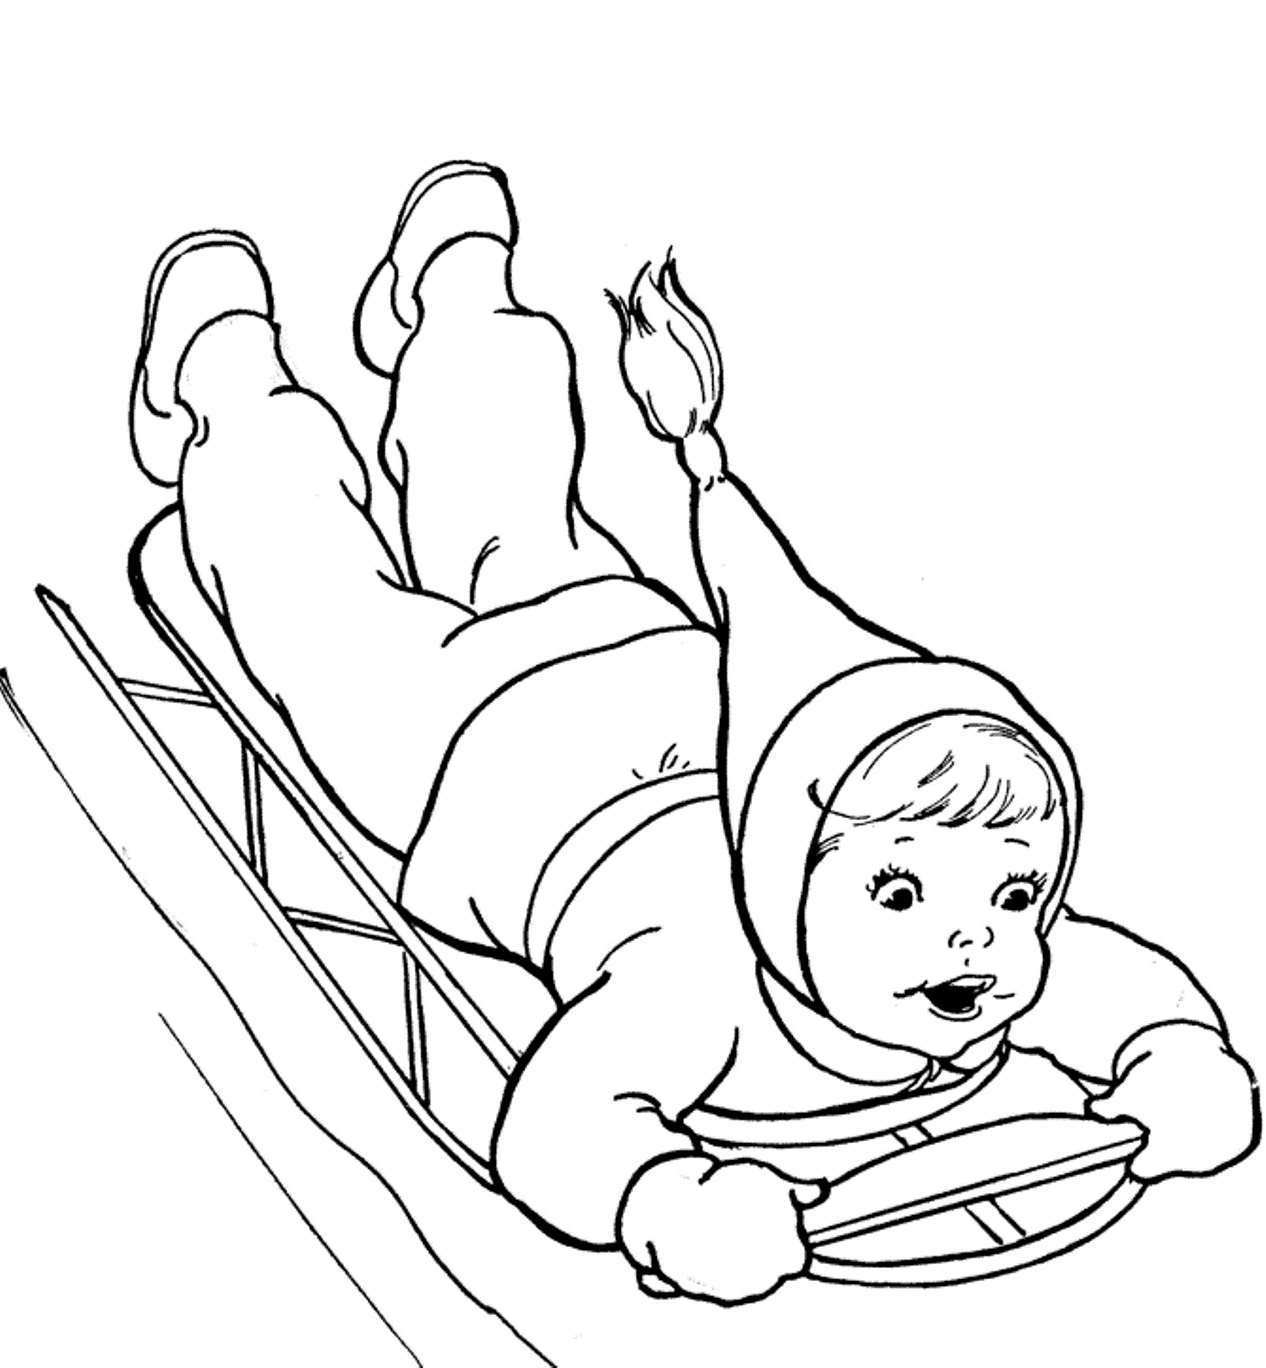 winter coloring pages for preschool - winter coloring pages